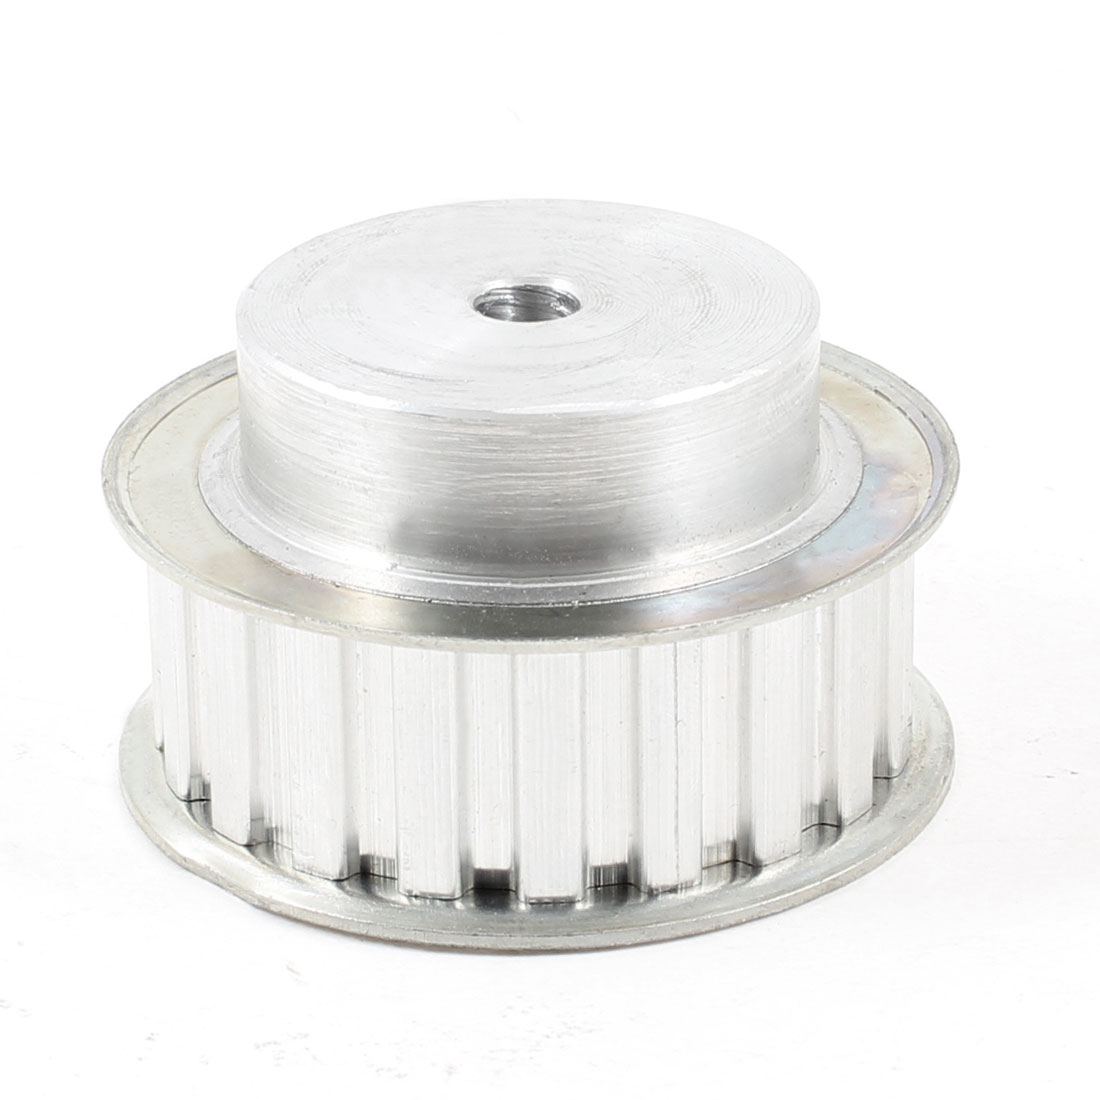 Silver Tone Aluminum Alloy L Type 20 Teeth 10mm Pilot Bore Timing Pulley